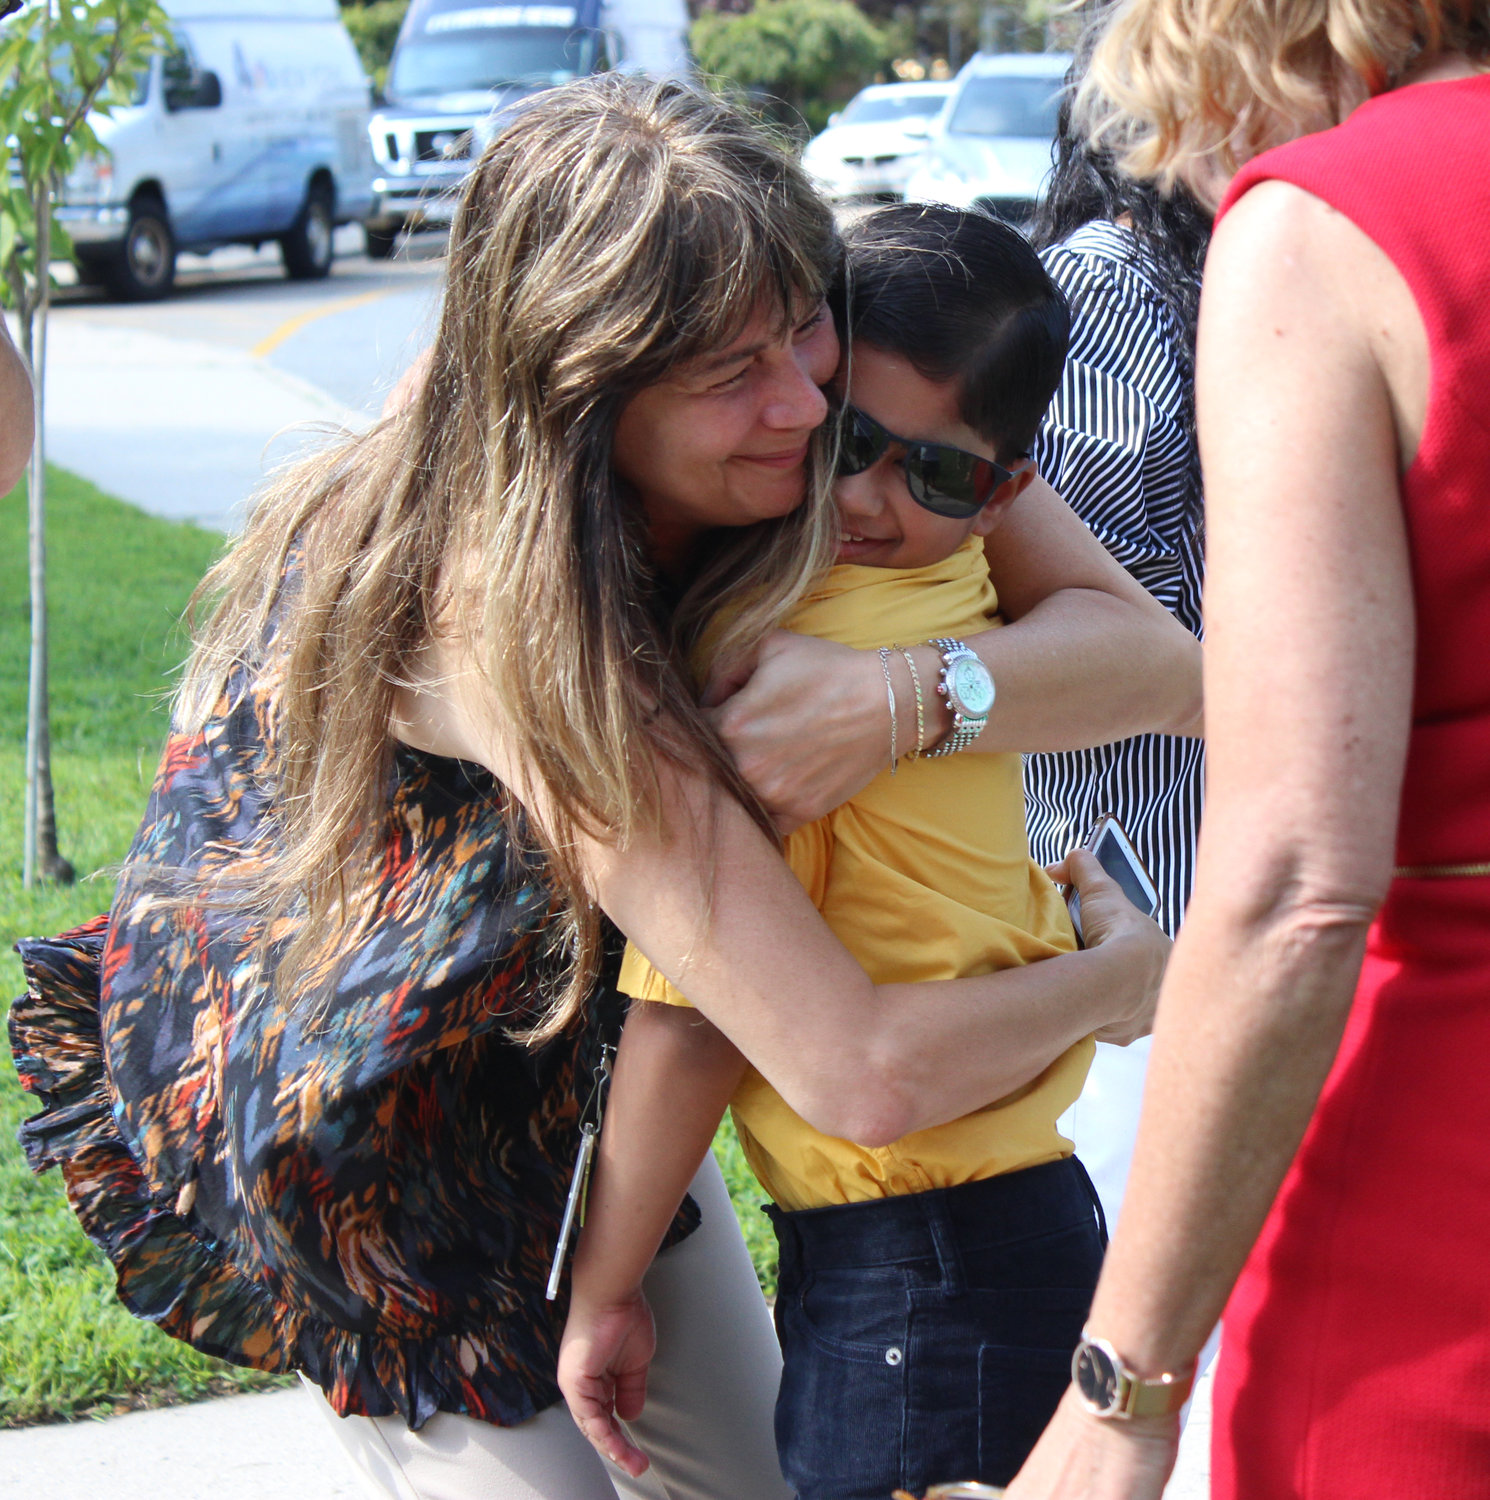 Mahdi Islam returned to Bowling Green Elementary School after a heart transplant in April left him hospitalized and out of school through the summer. One staff member after another greeted him on the first day of classes on Sept. 4.